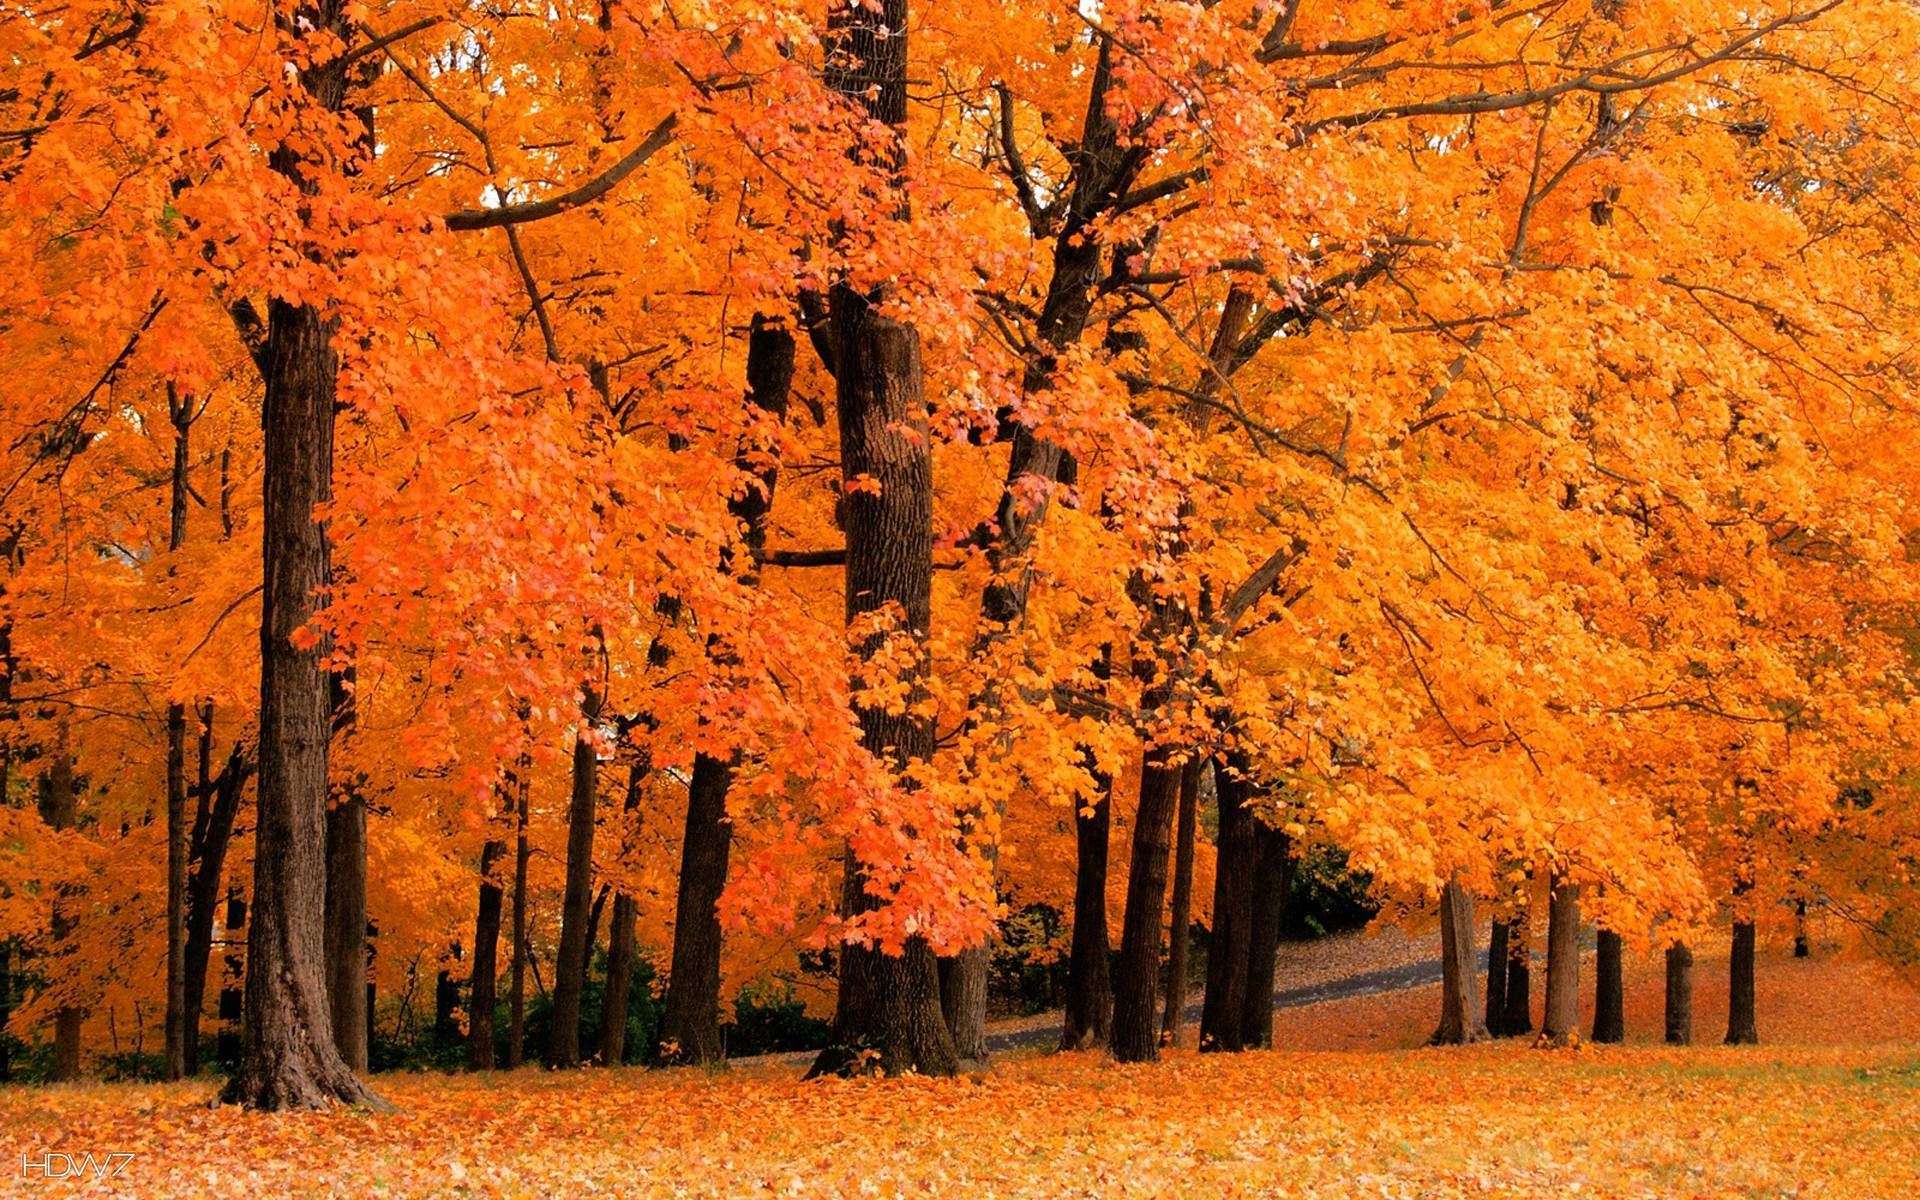 autumn fall wallpaper orange trees